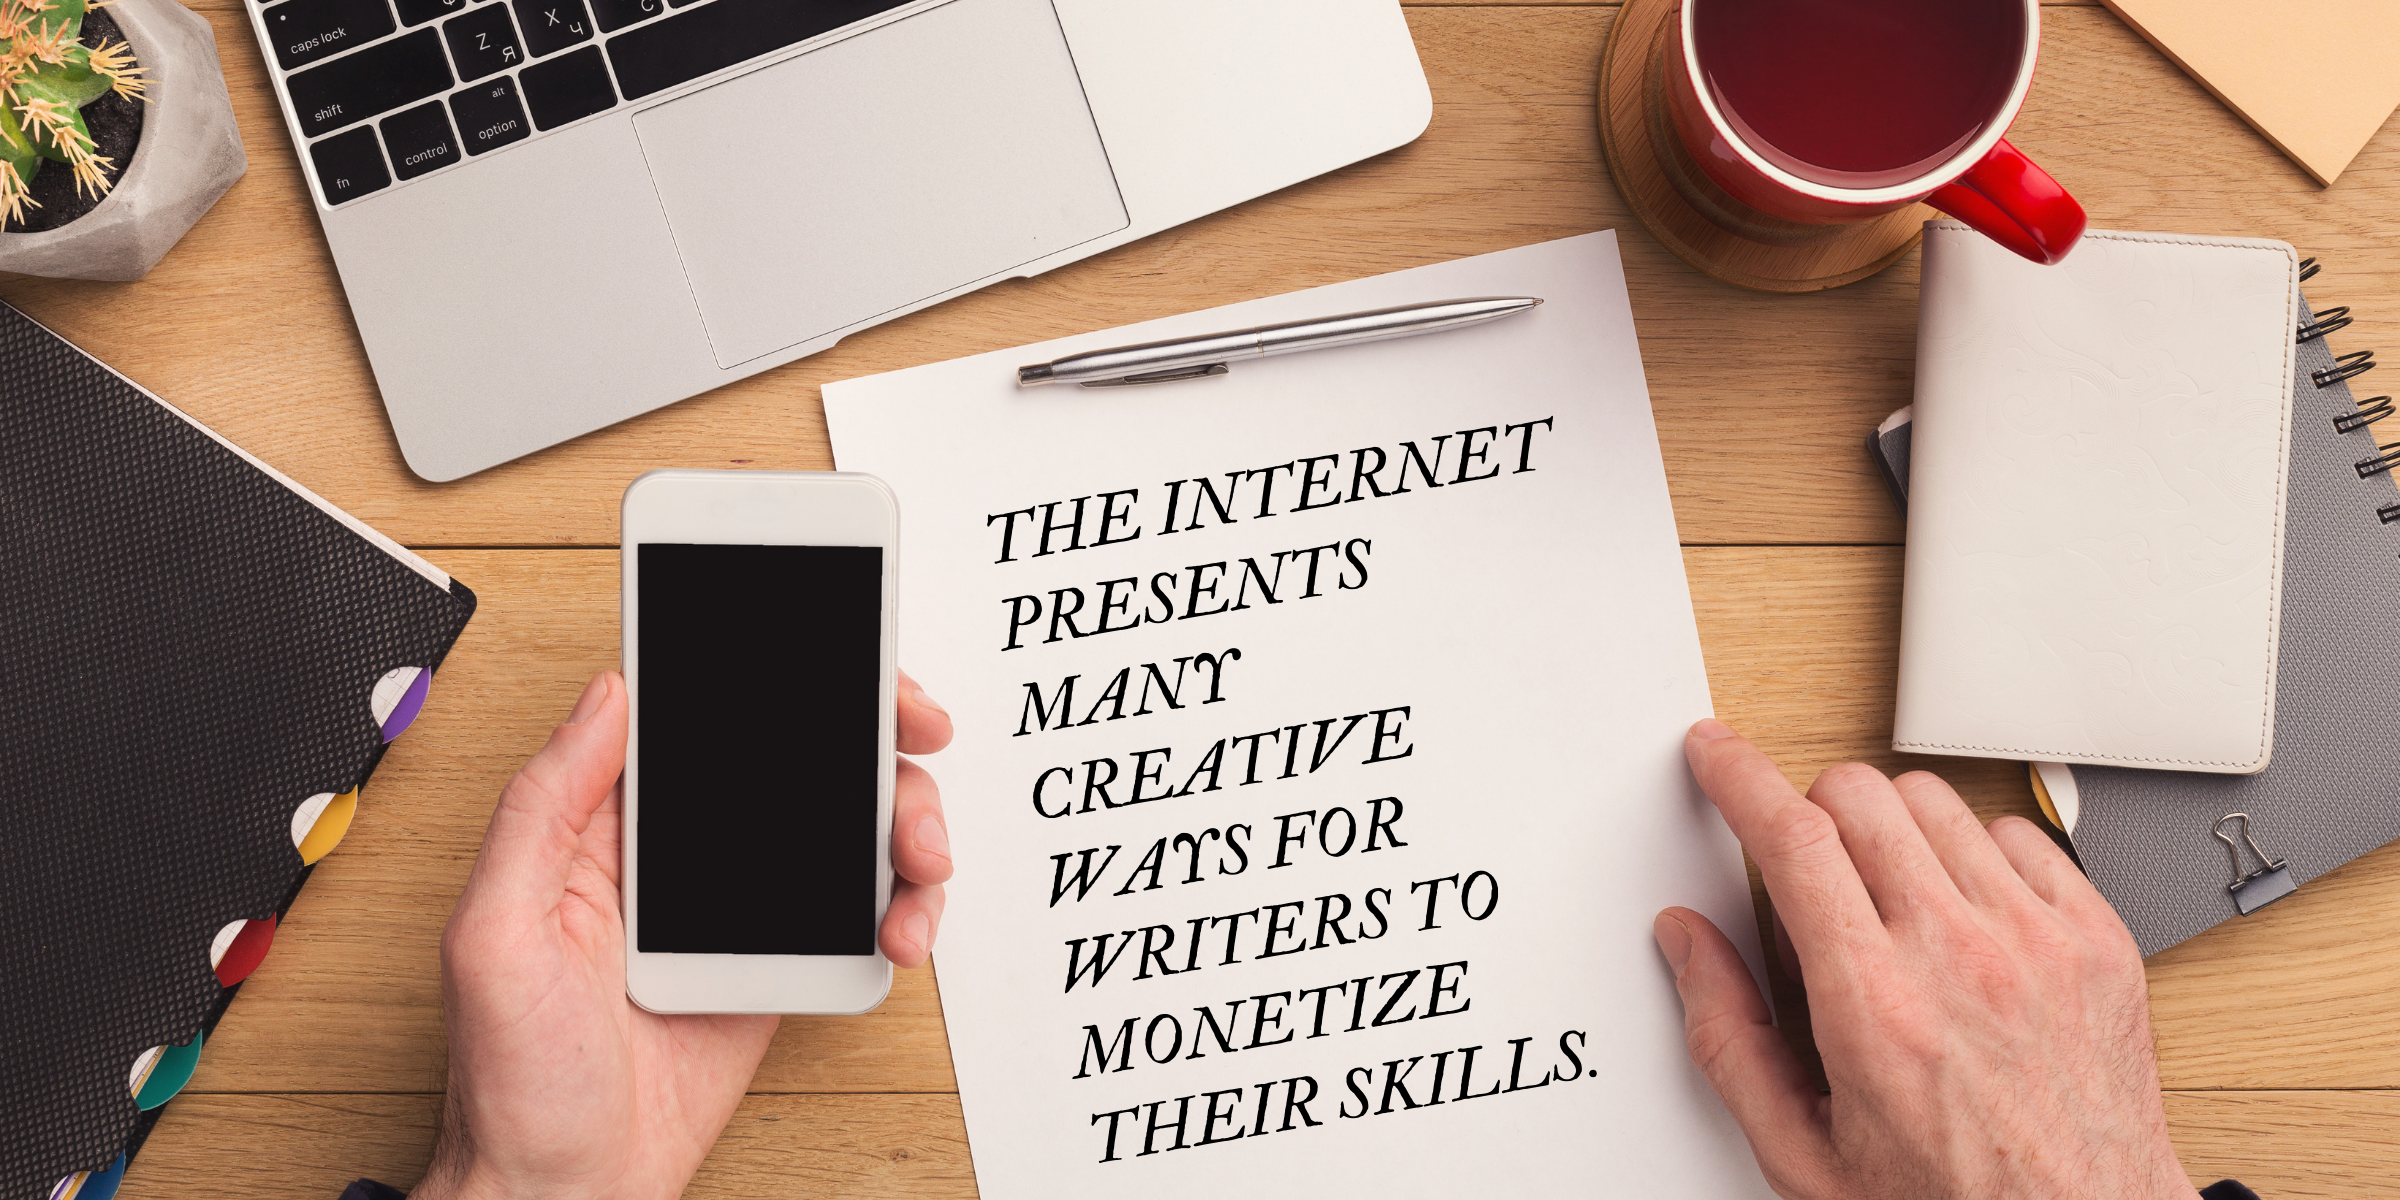 What Can You Do With a Creative Writing Degree?